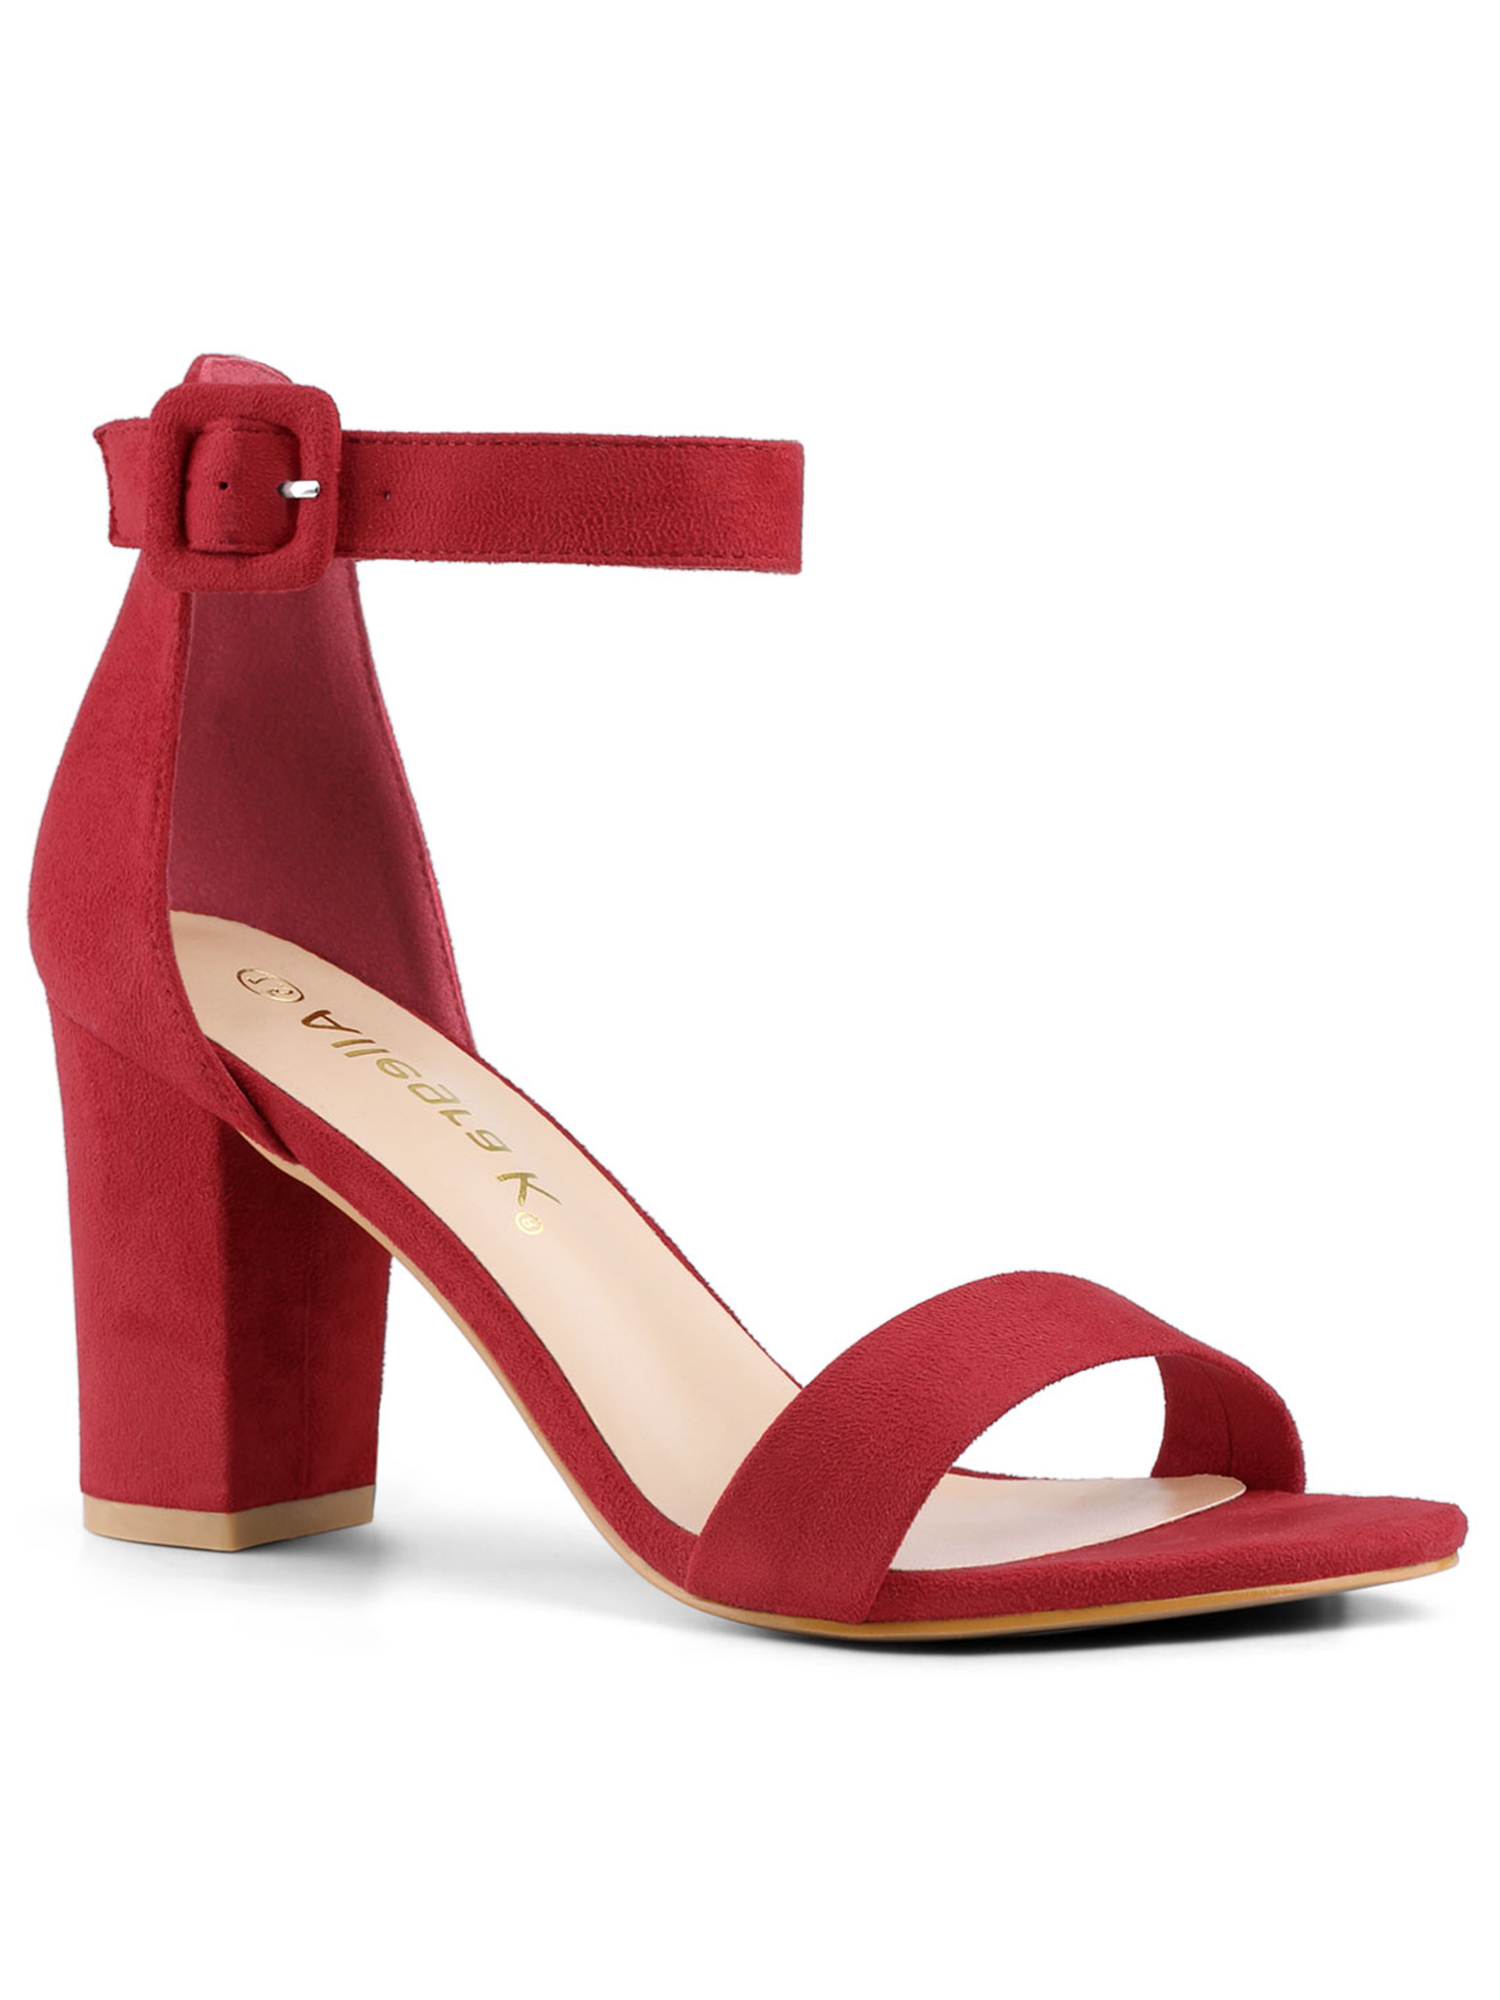 Details about  /Women Ankle Strap Bow Slingbacks Sandals Block Mid Heels Faux Suede Casual Shoes